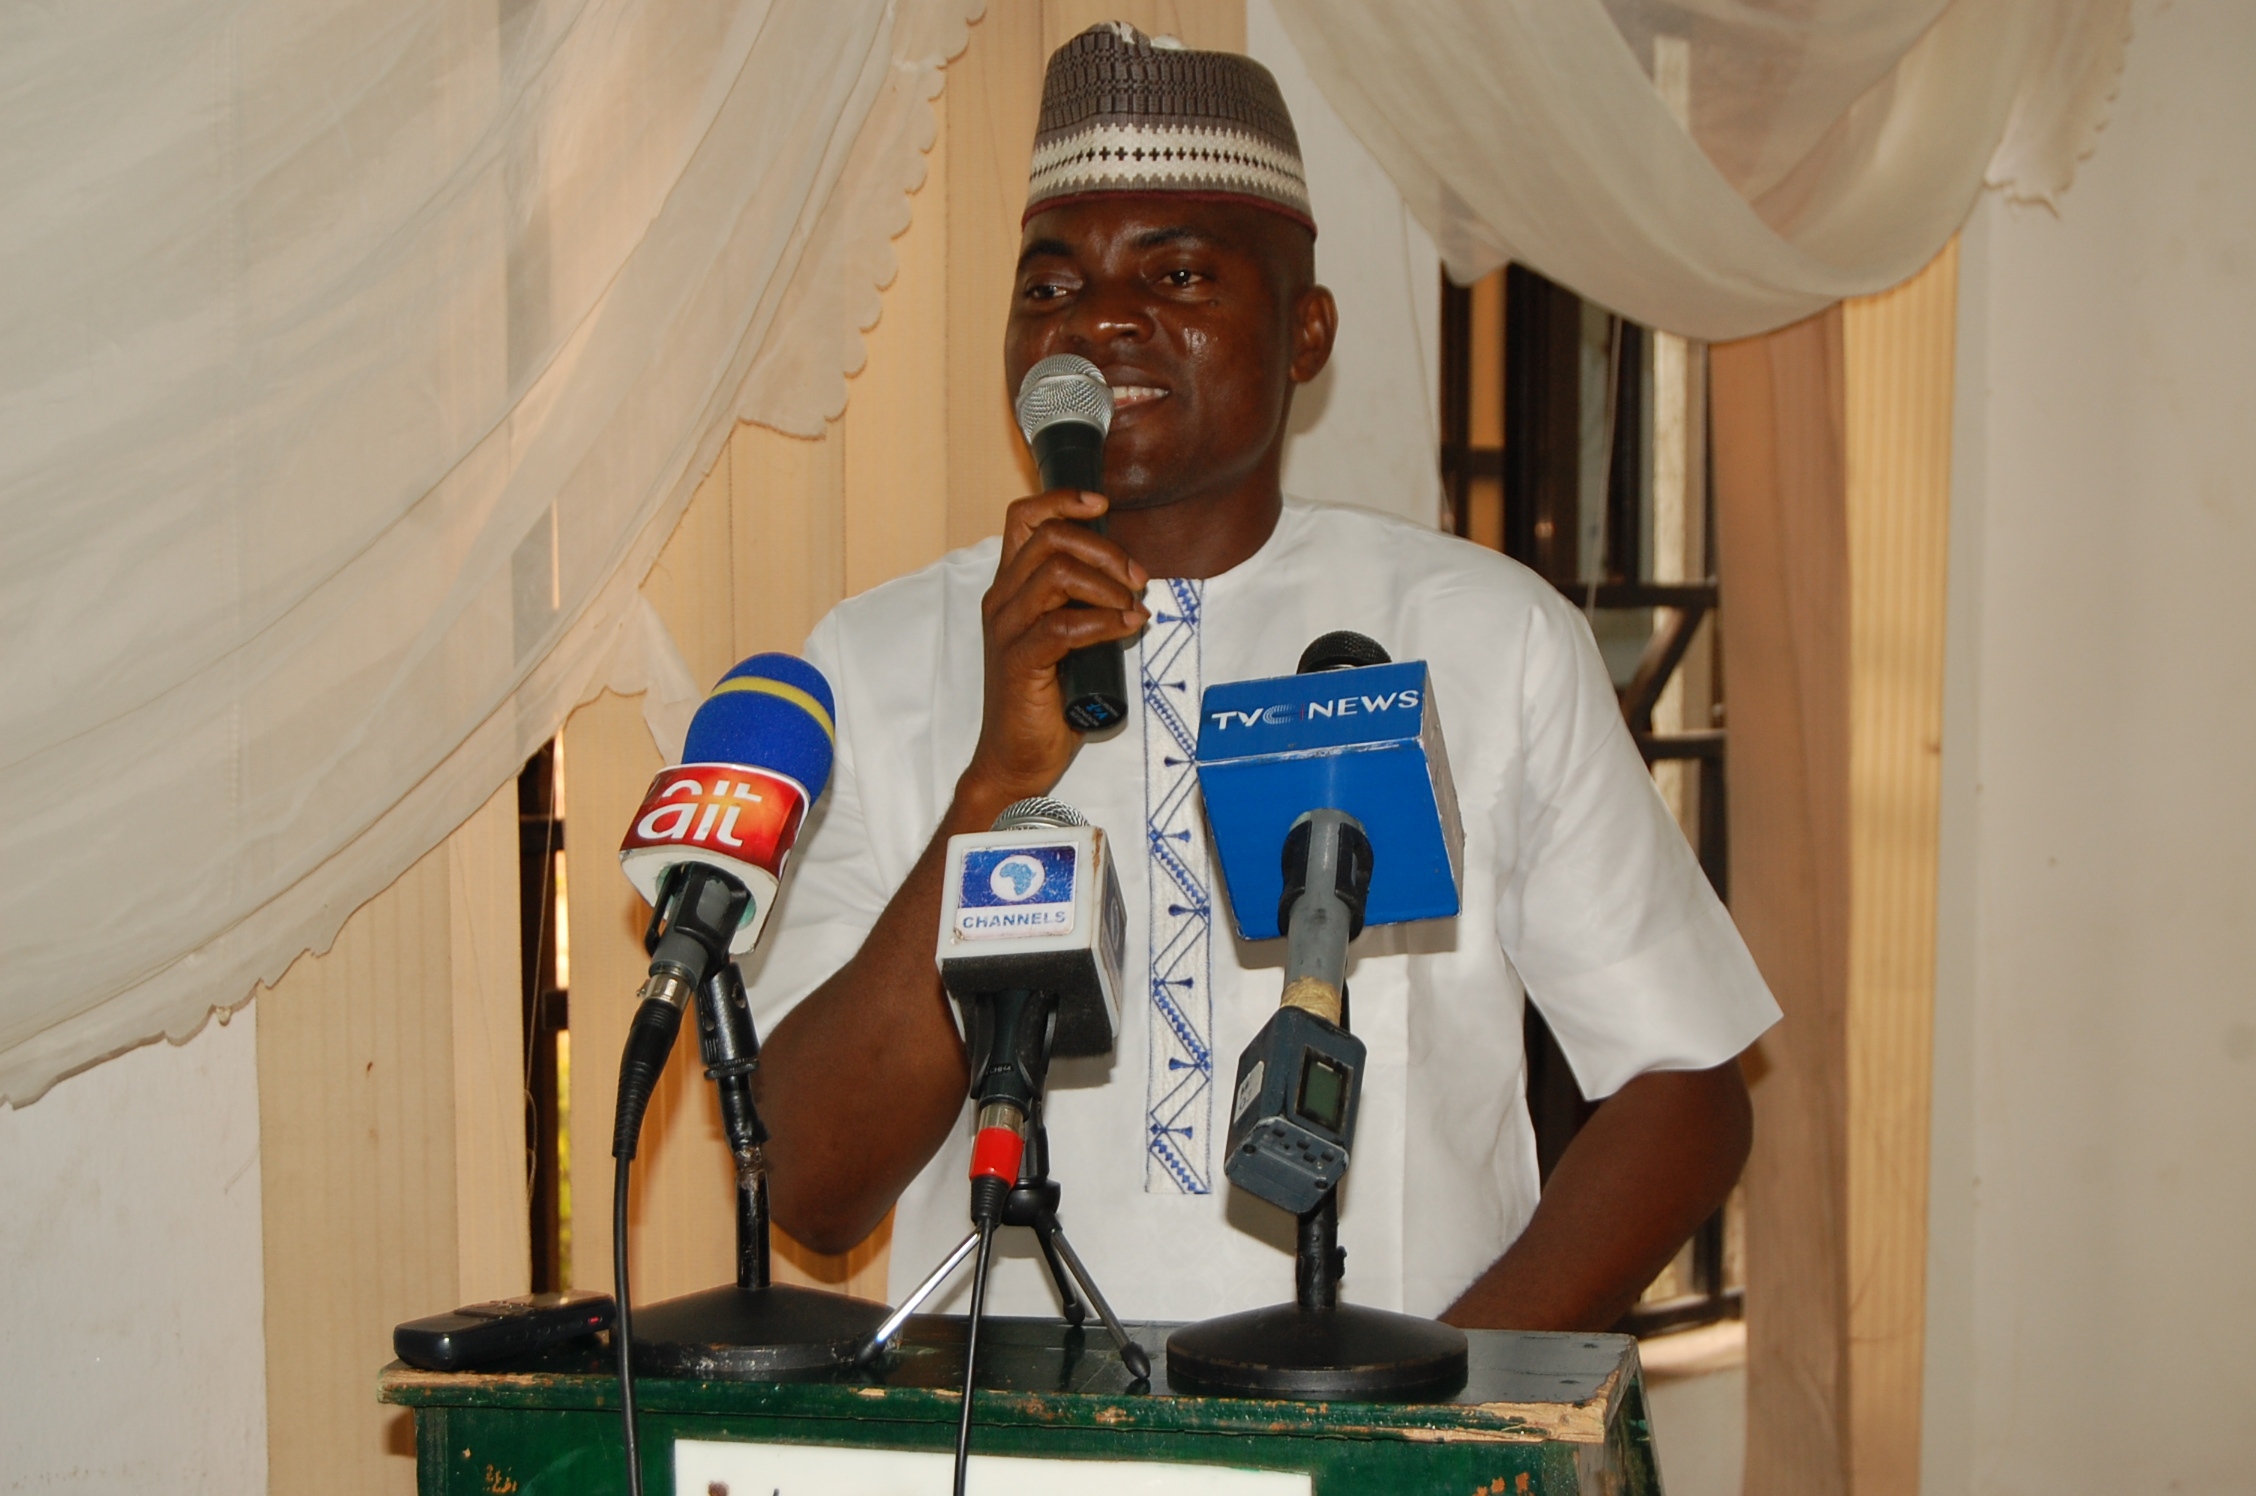 NUJ assures KWSG of media support on security